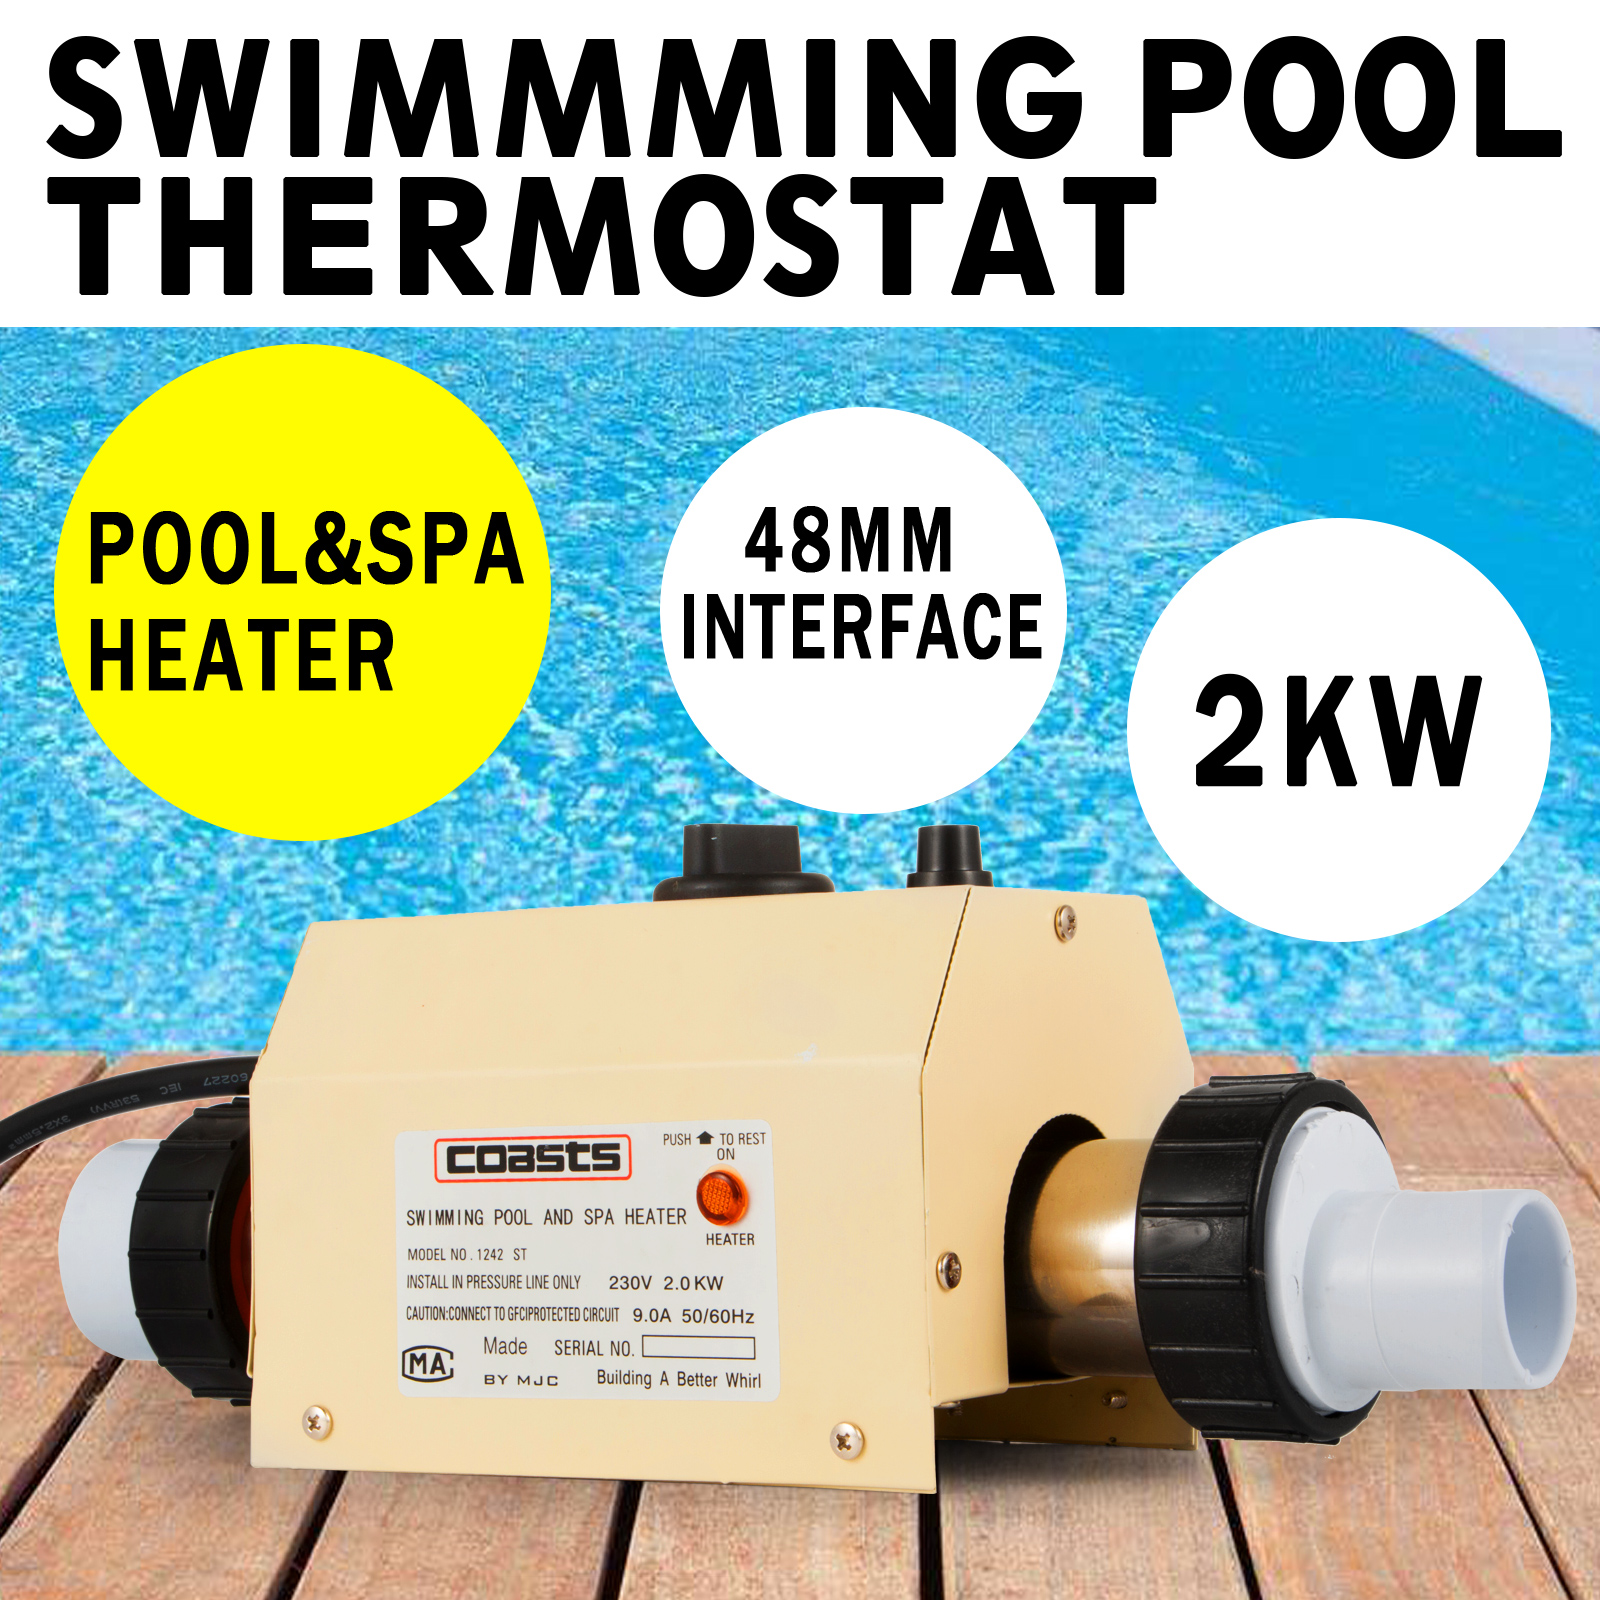 2kw swimming pool thermostat water heater jacuzzi 9a automatic rh ebay co uk